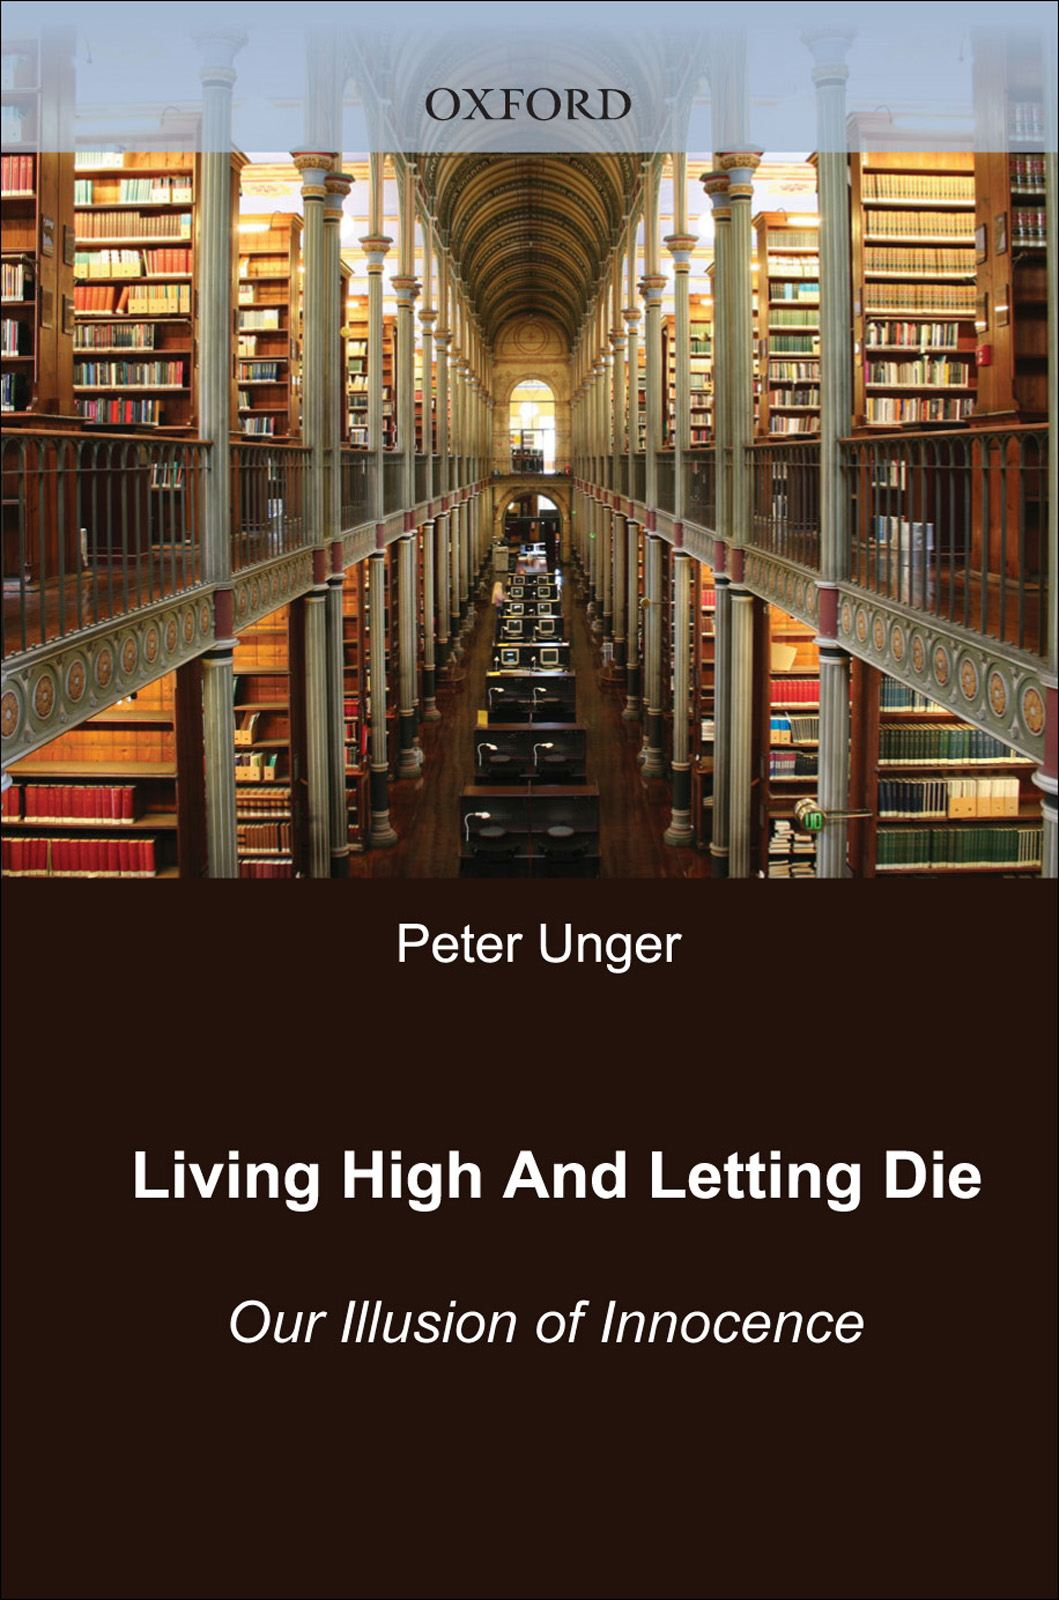 Our Illusion of Innocence TTS - Peter Ungor